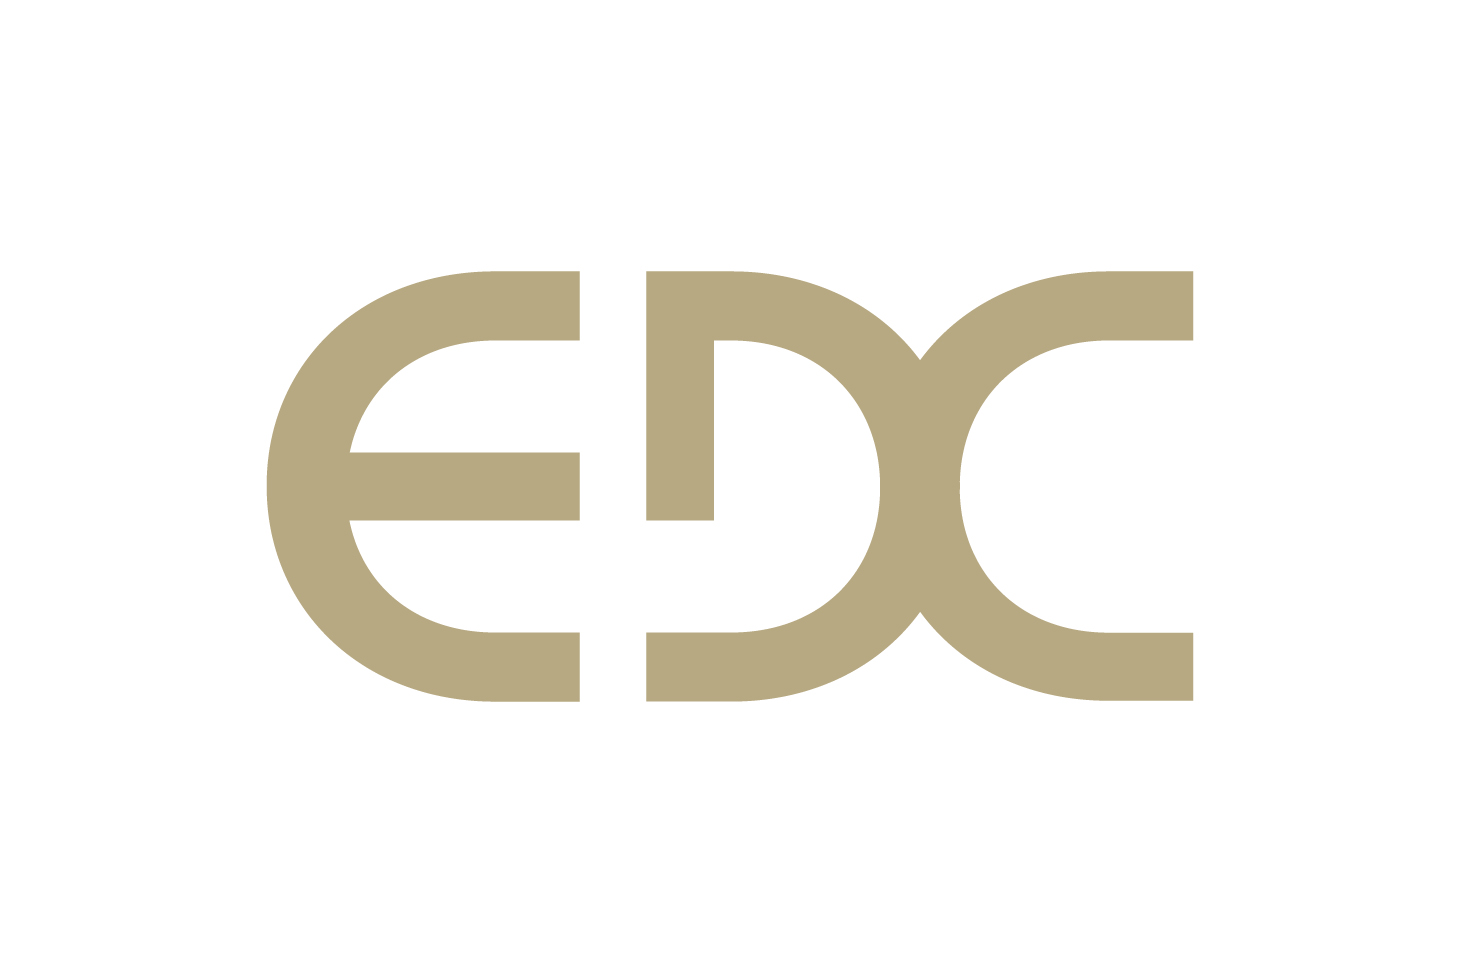 EKO Development Company